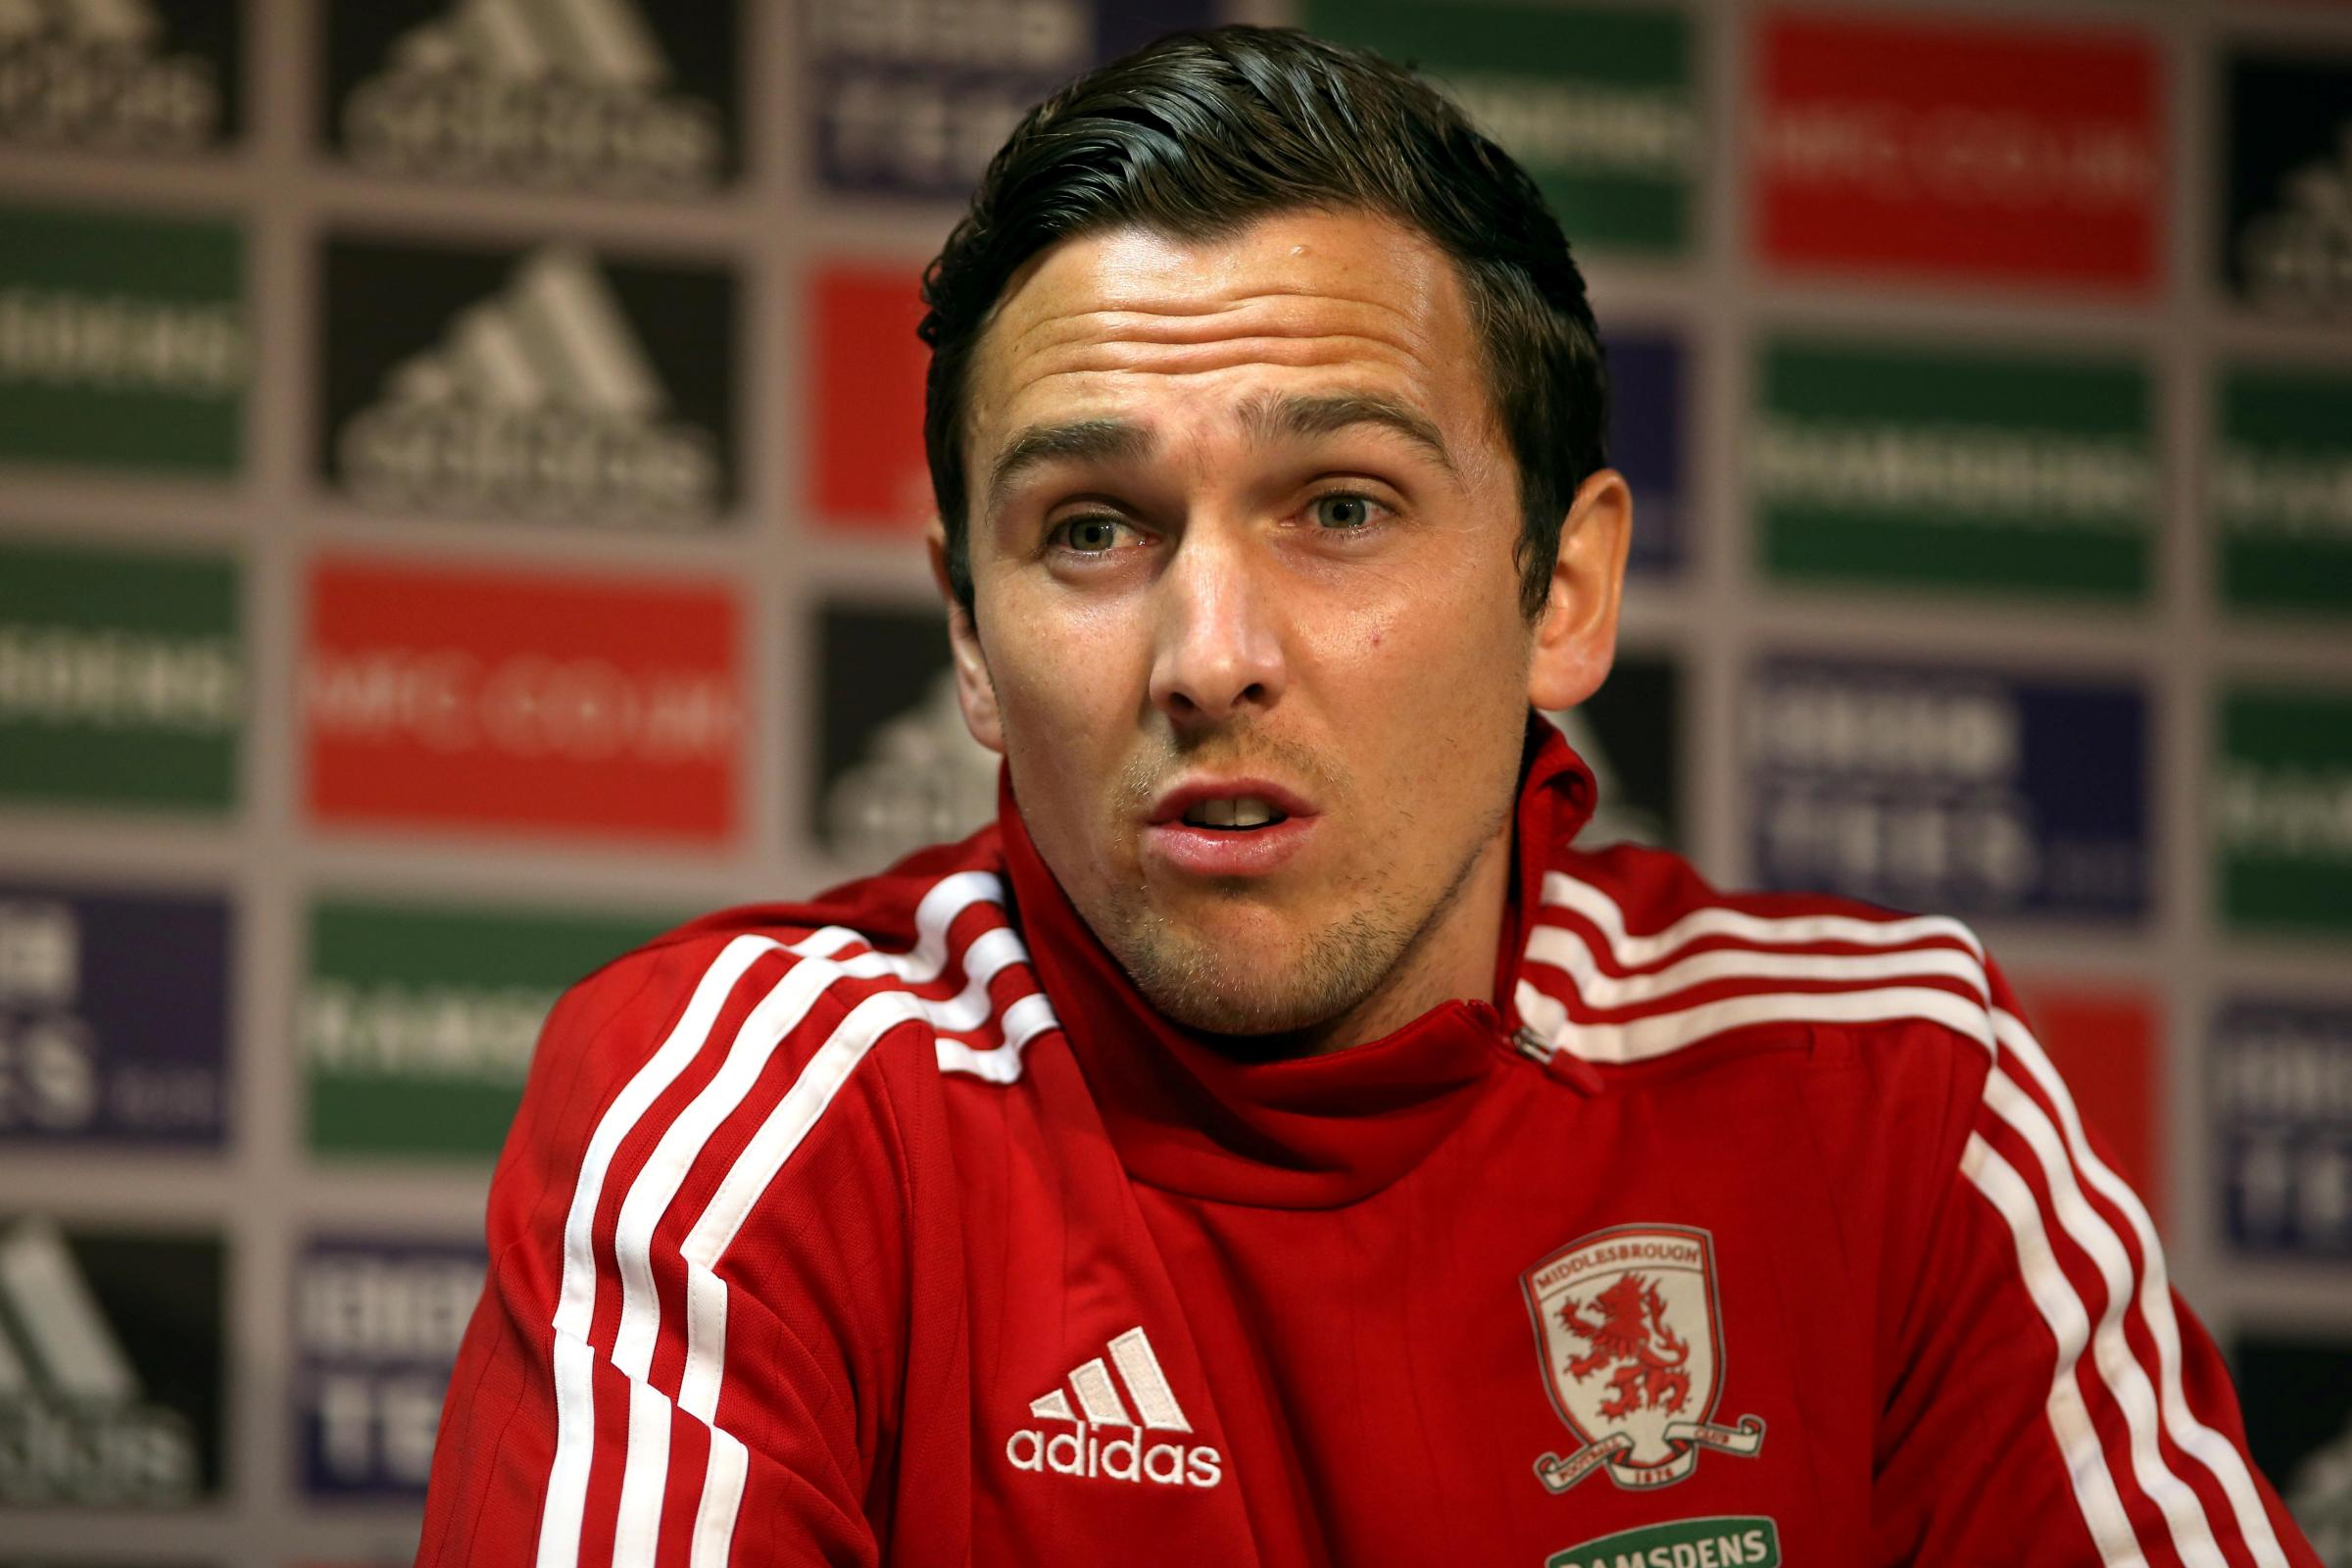 UNCERTAIN FUTURE: Middlesbrough midfielder Stewart Downing